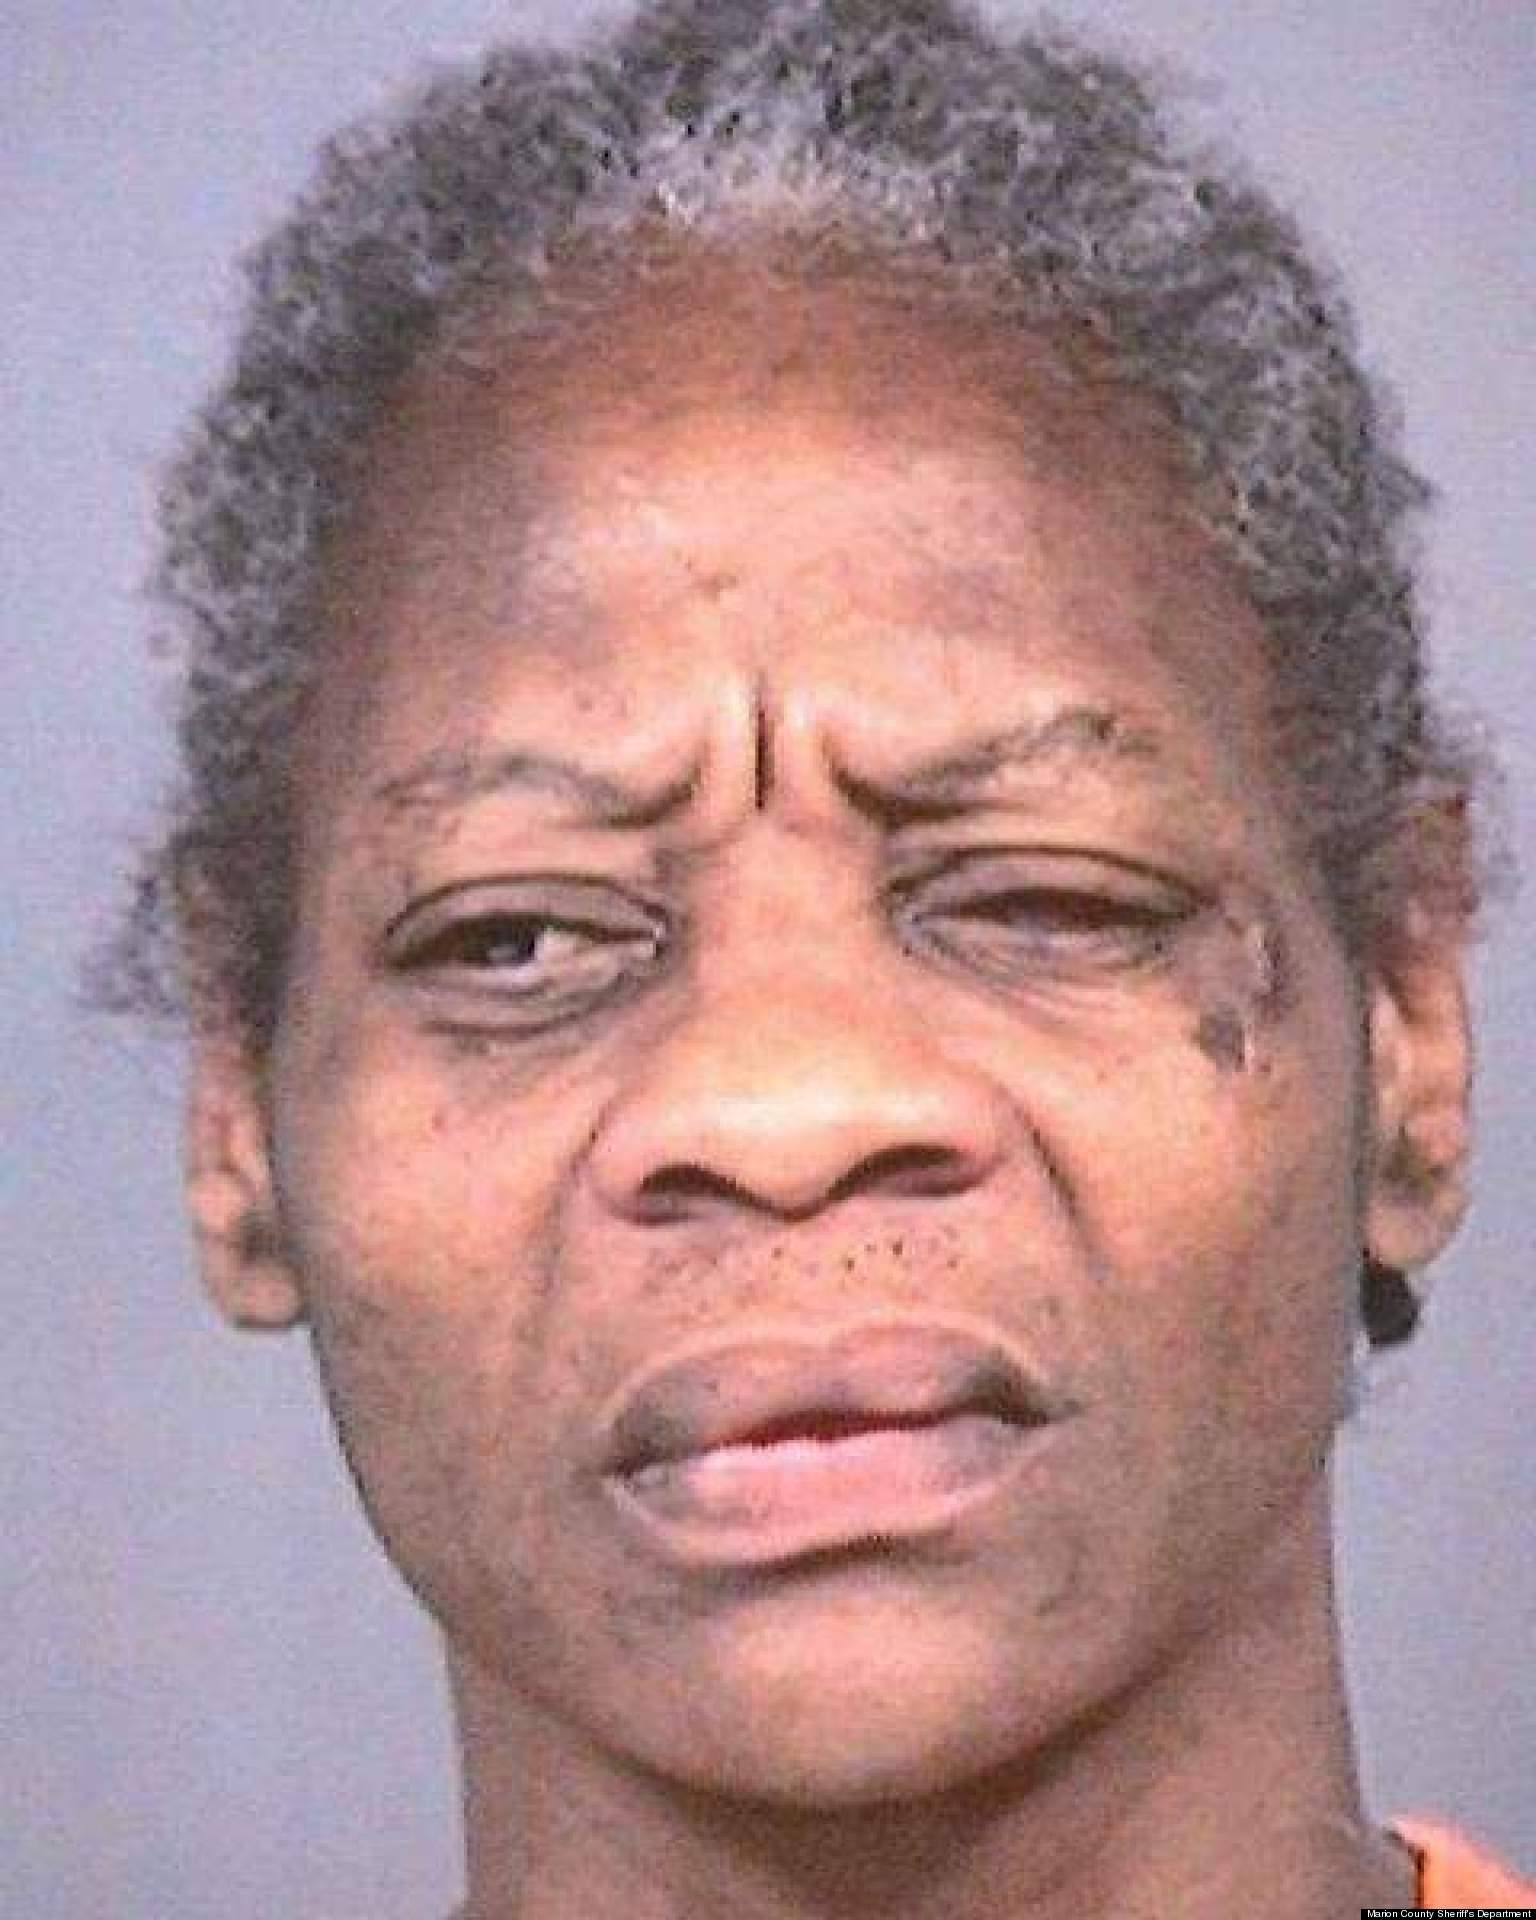 grandmother nude Naked Grandma Jacqueline Burse Arrested, Allegedly Offers Sexual Favors to  Officers | HuffPost